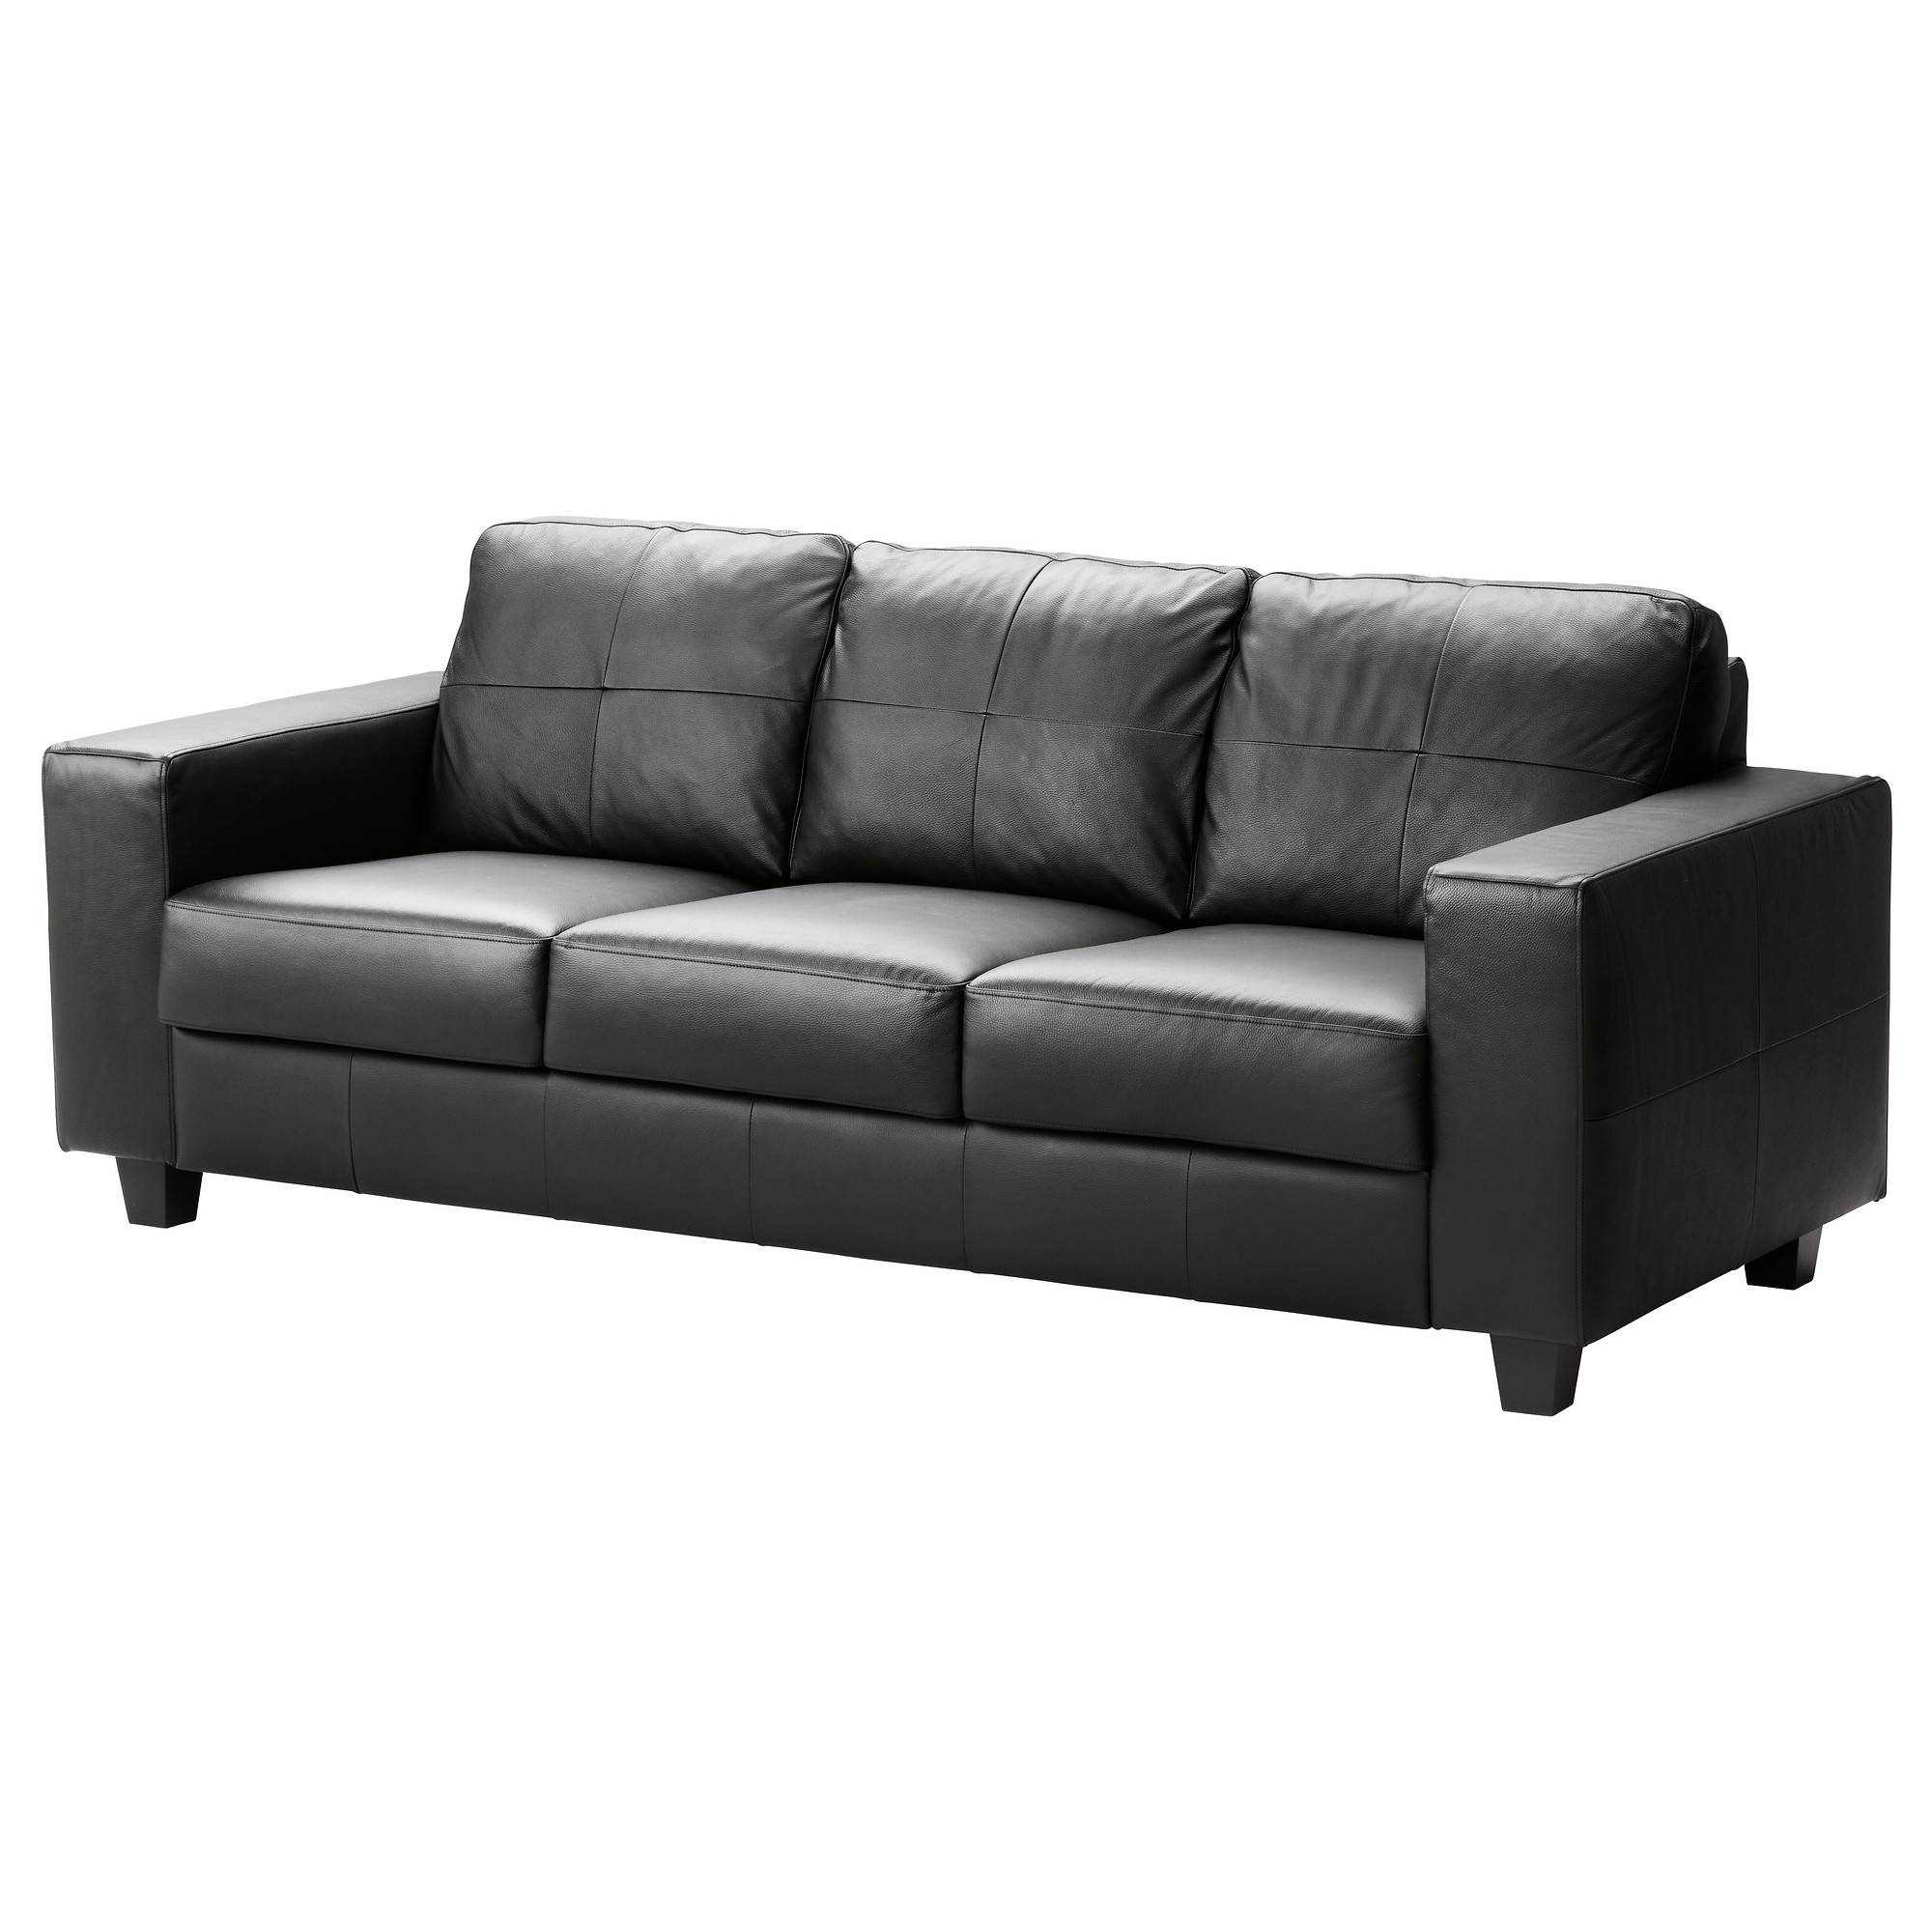 Black Leather Chairs Ikea Best 15 43 Of Black Vinyl Sofas